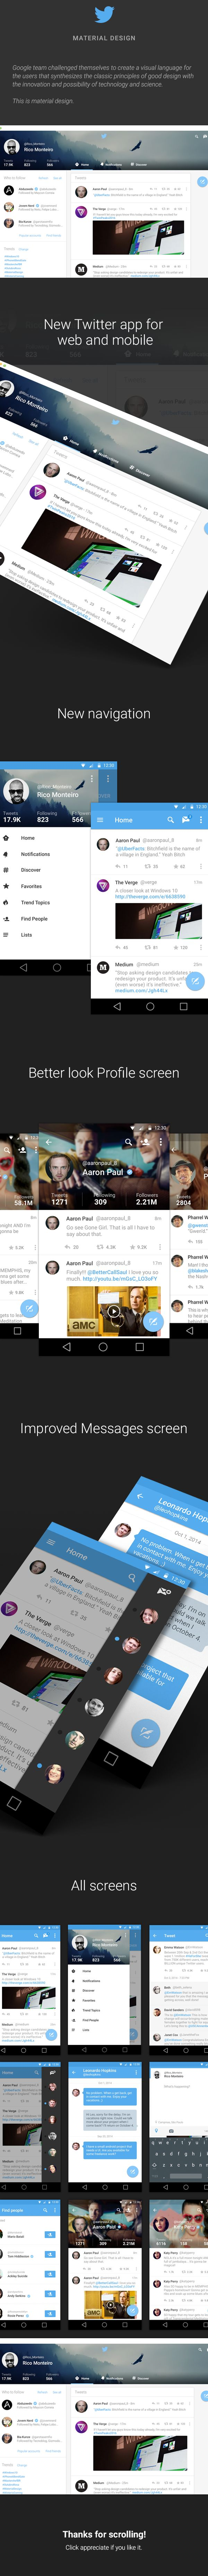 Twitter Material Design on Behance